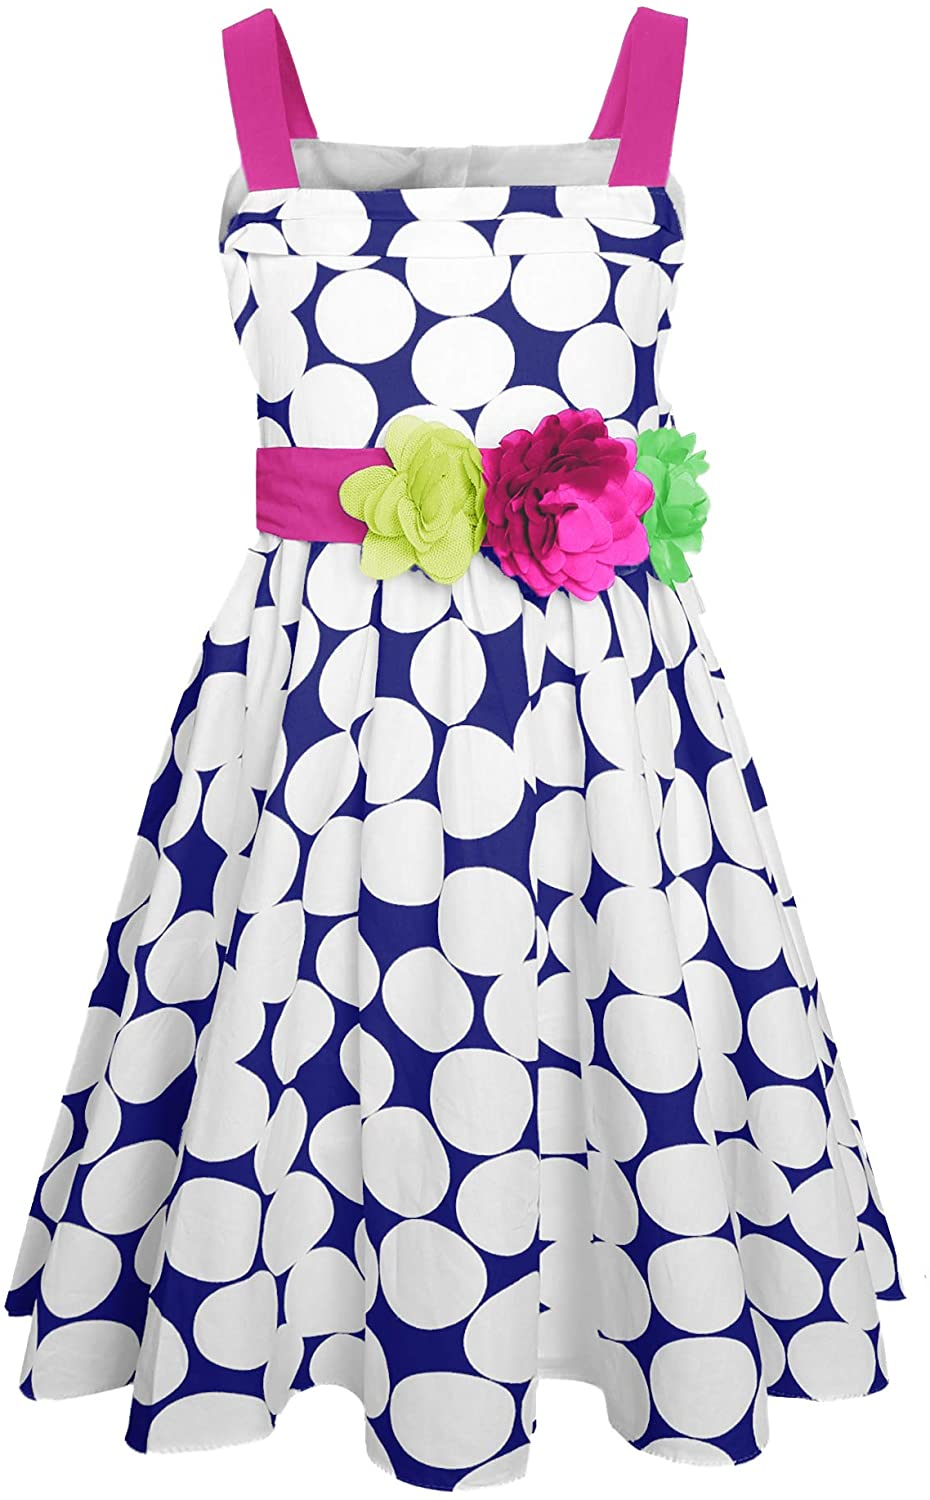 SPEINY Girls Sleeveless Pleated Summer Flared Dress Casual Kids Clothes